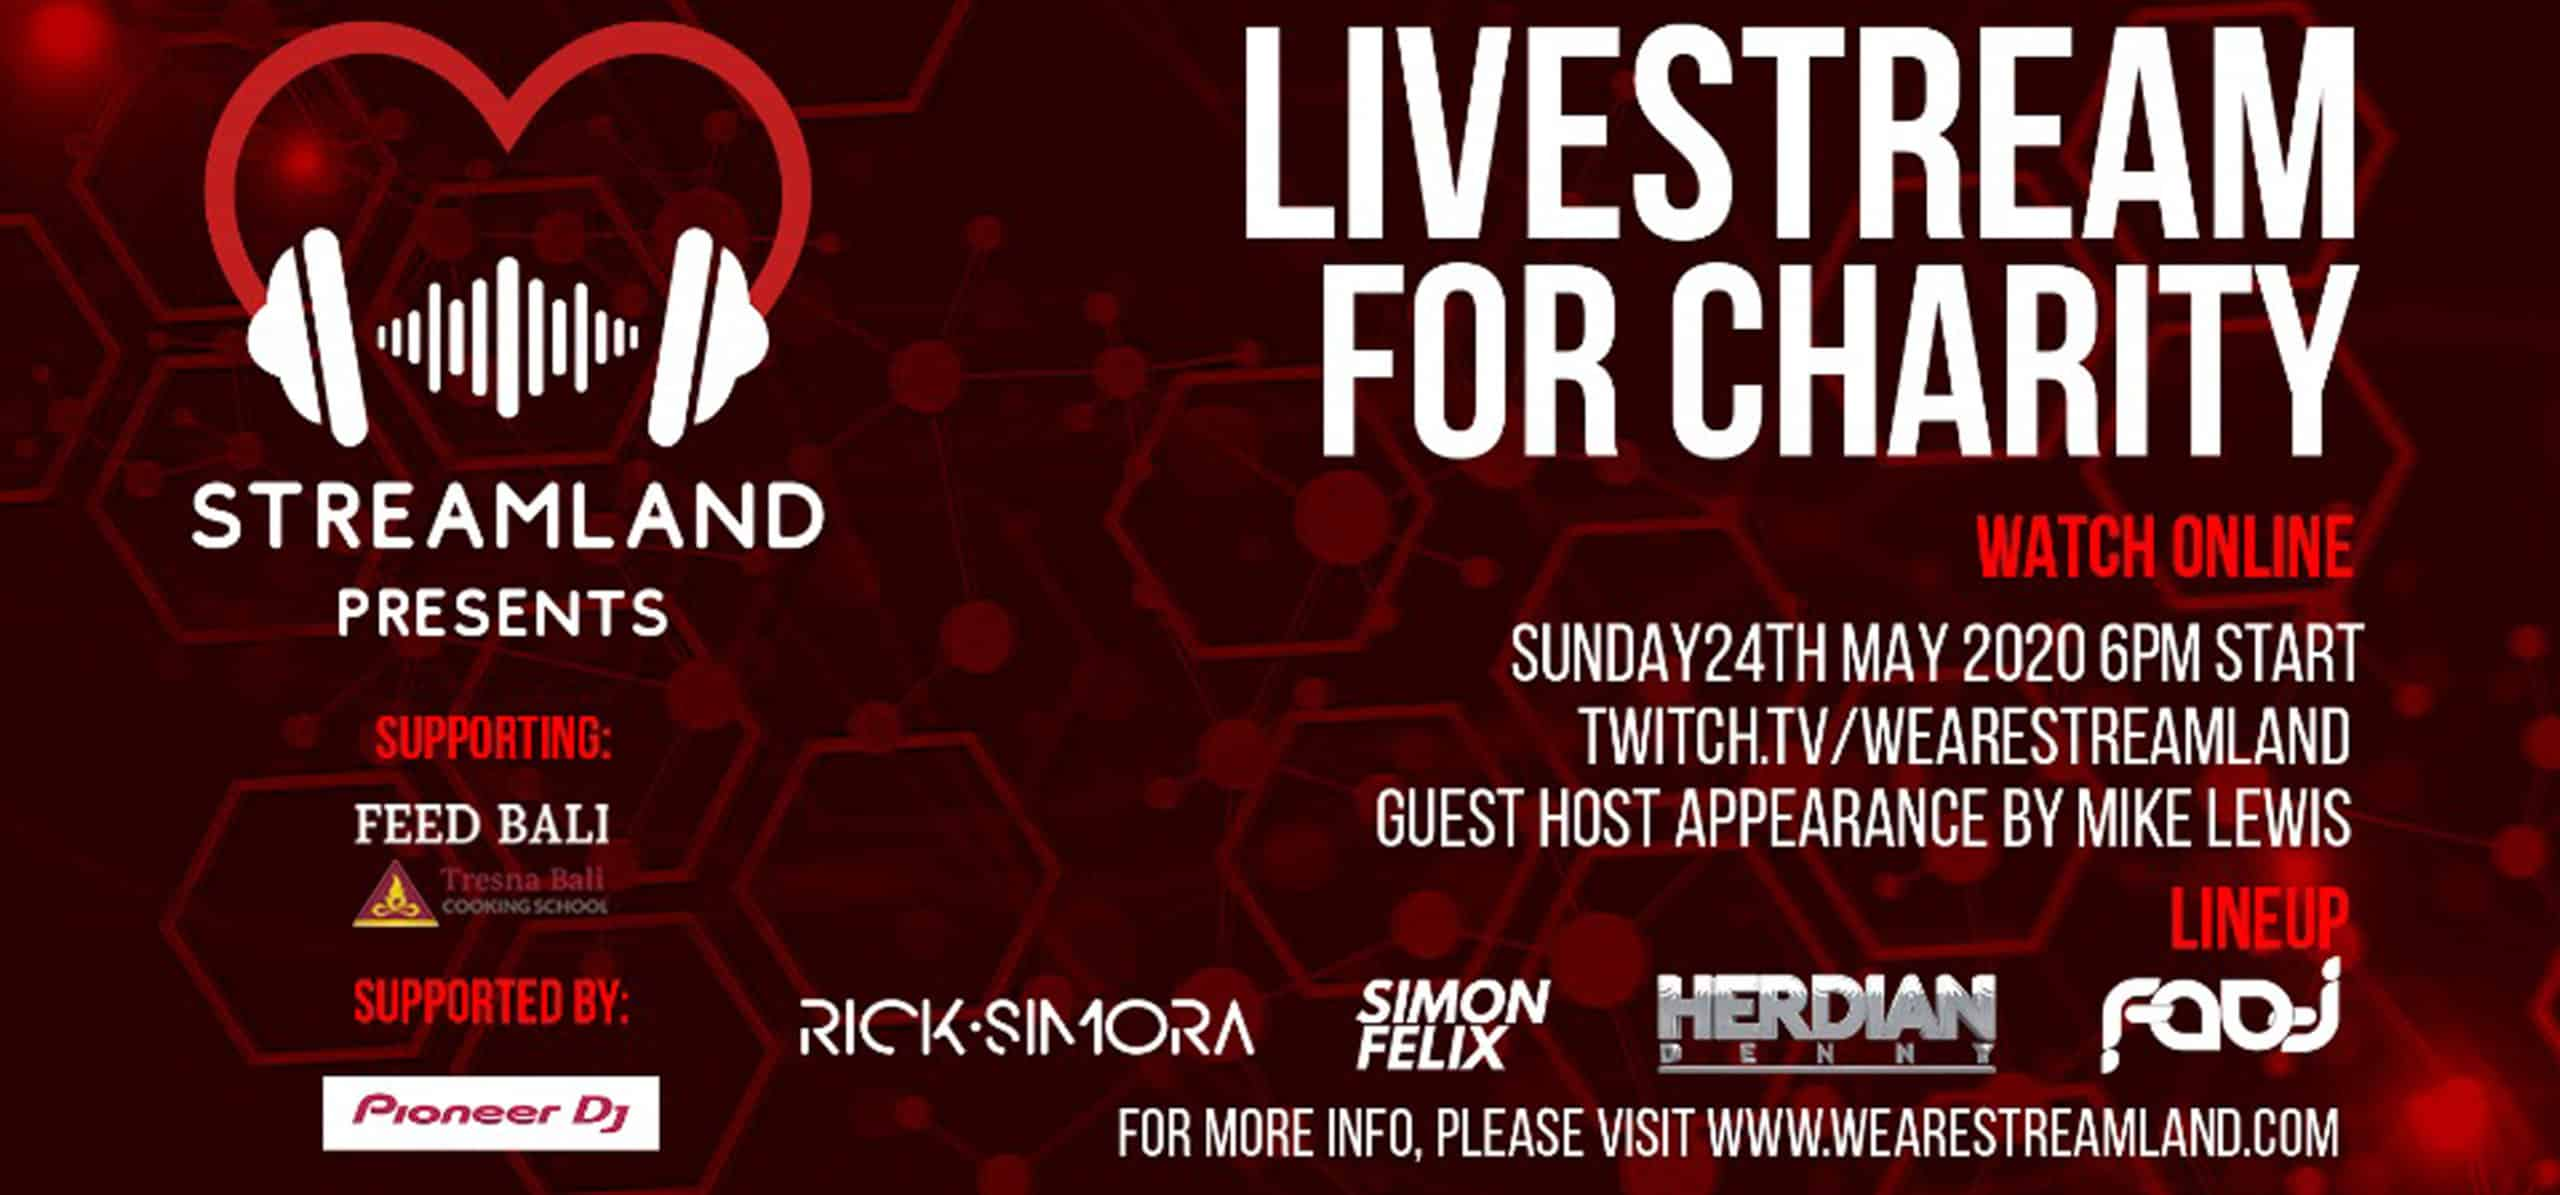 STREAMLAND – LIVESTREAM FOR CHARITY (BALI)